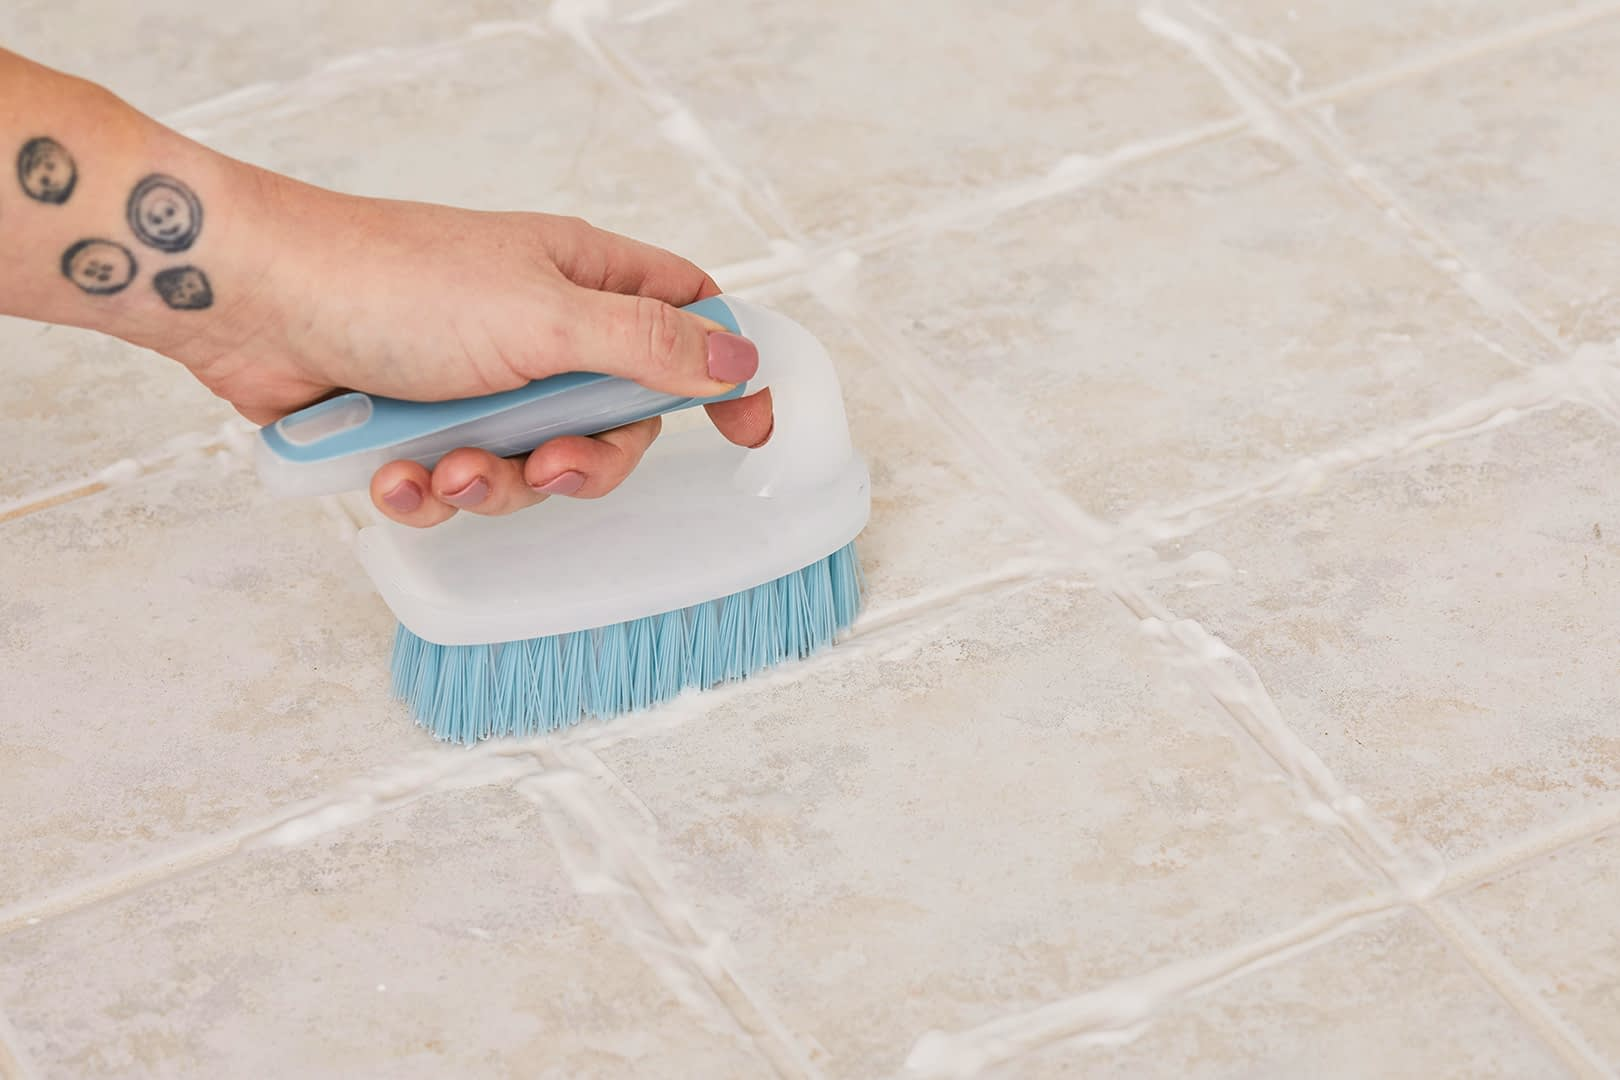 Use Ammonia To Disinfect The Tile's Floor: